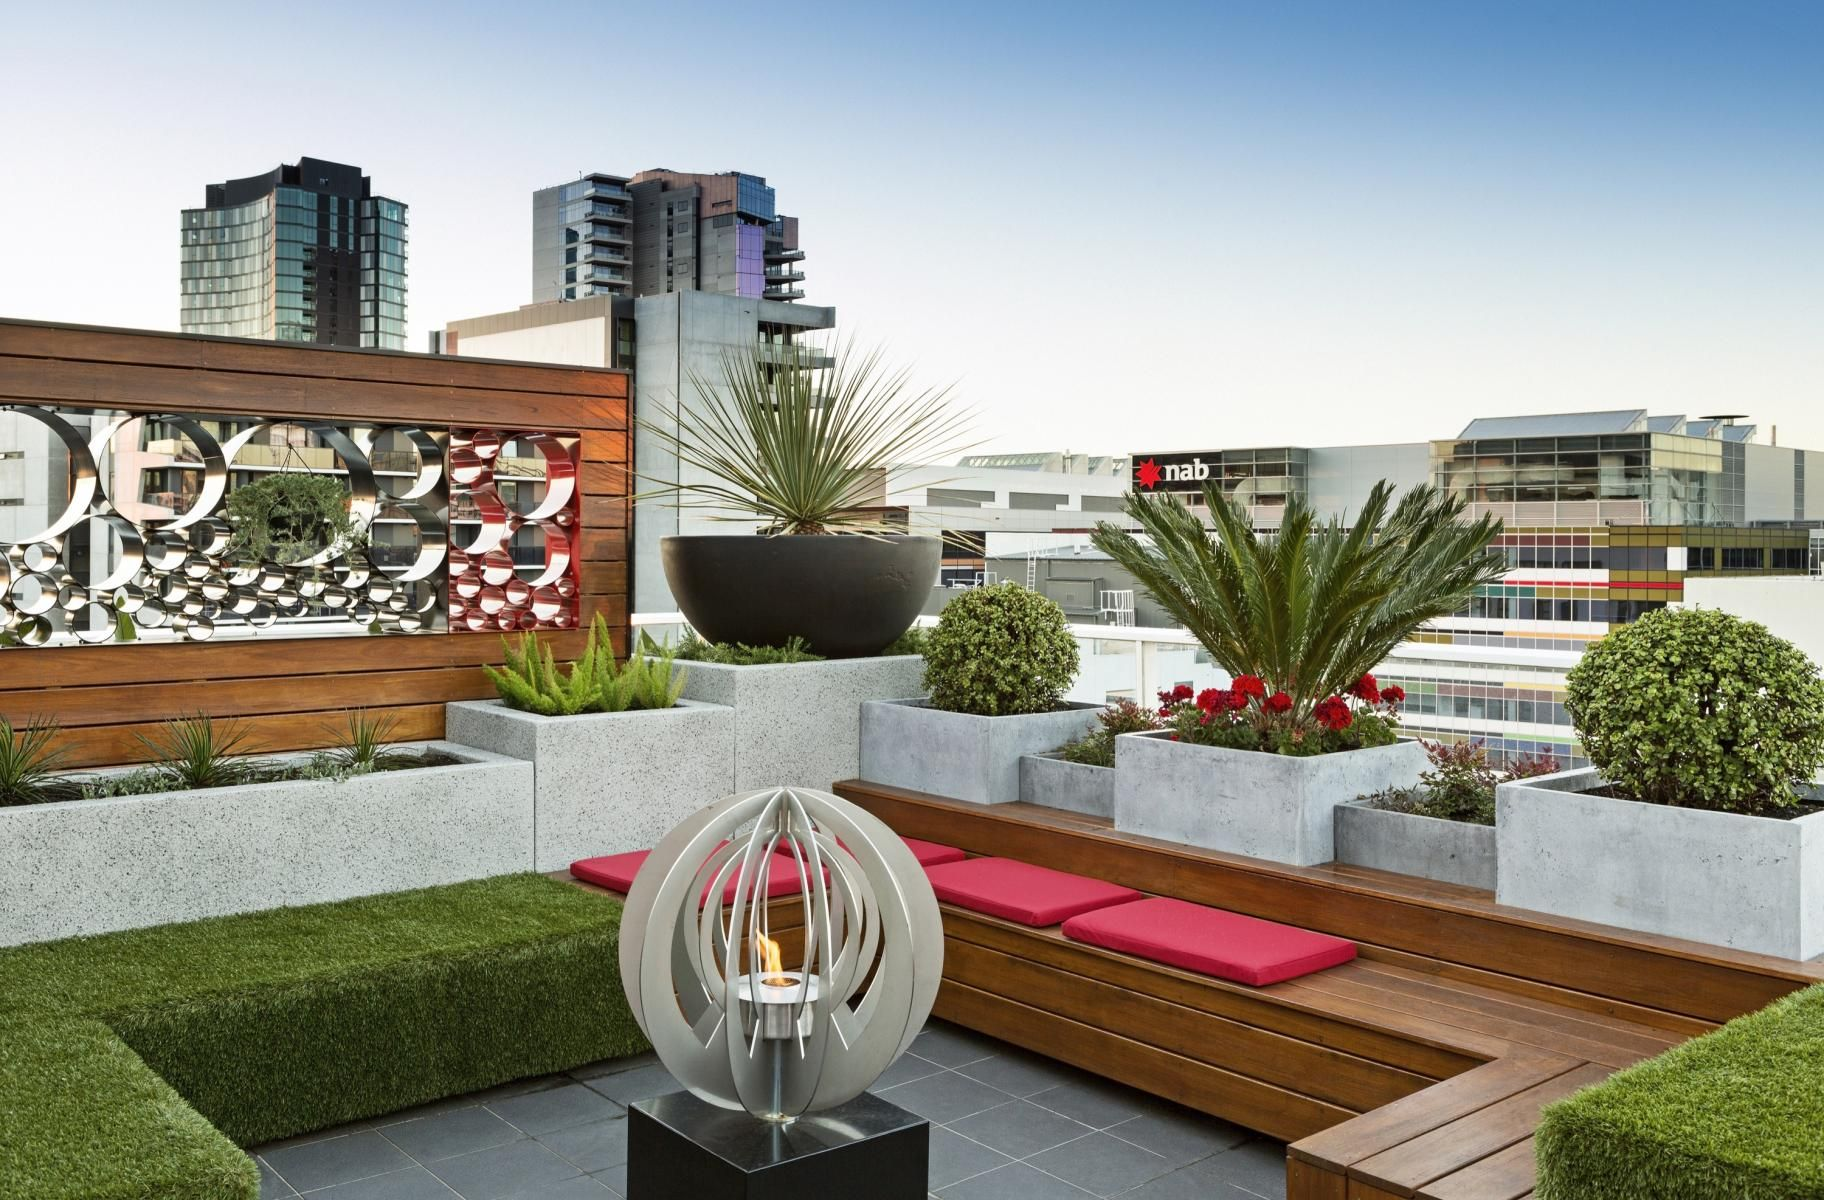 Rooftop garden docklands penthouse paal grant designs for Garden on rooftop designs